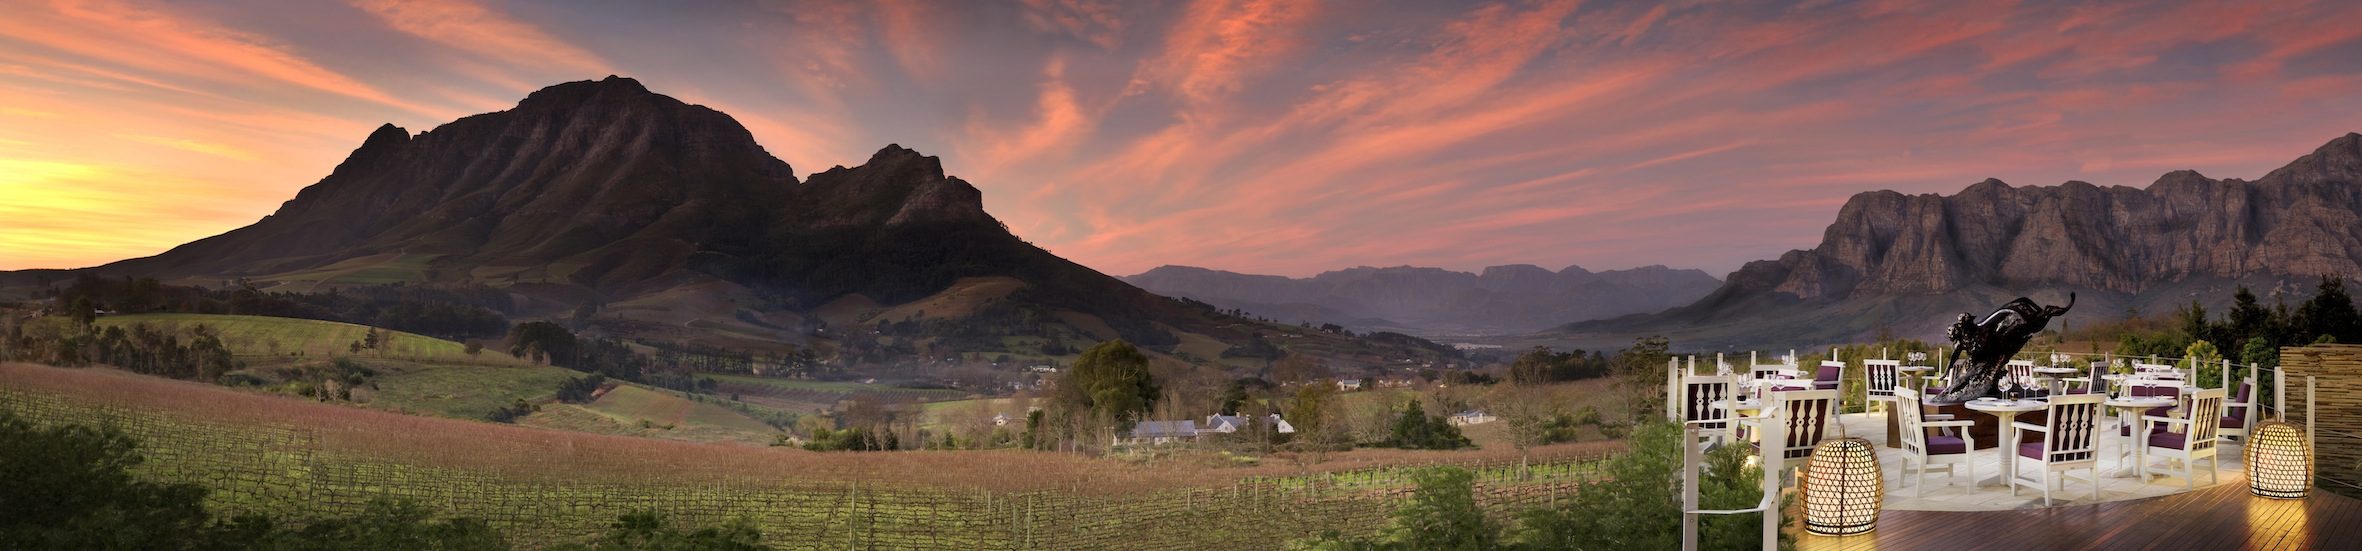 Delaire Graff Estate – a diamond in the Stellenbosch Crown | Michael ...: michaelolivier.co.za/archives/5272